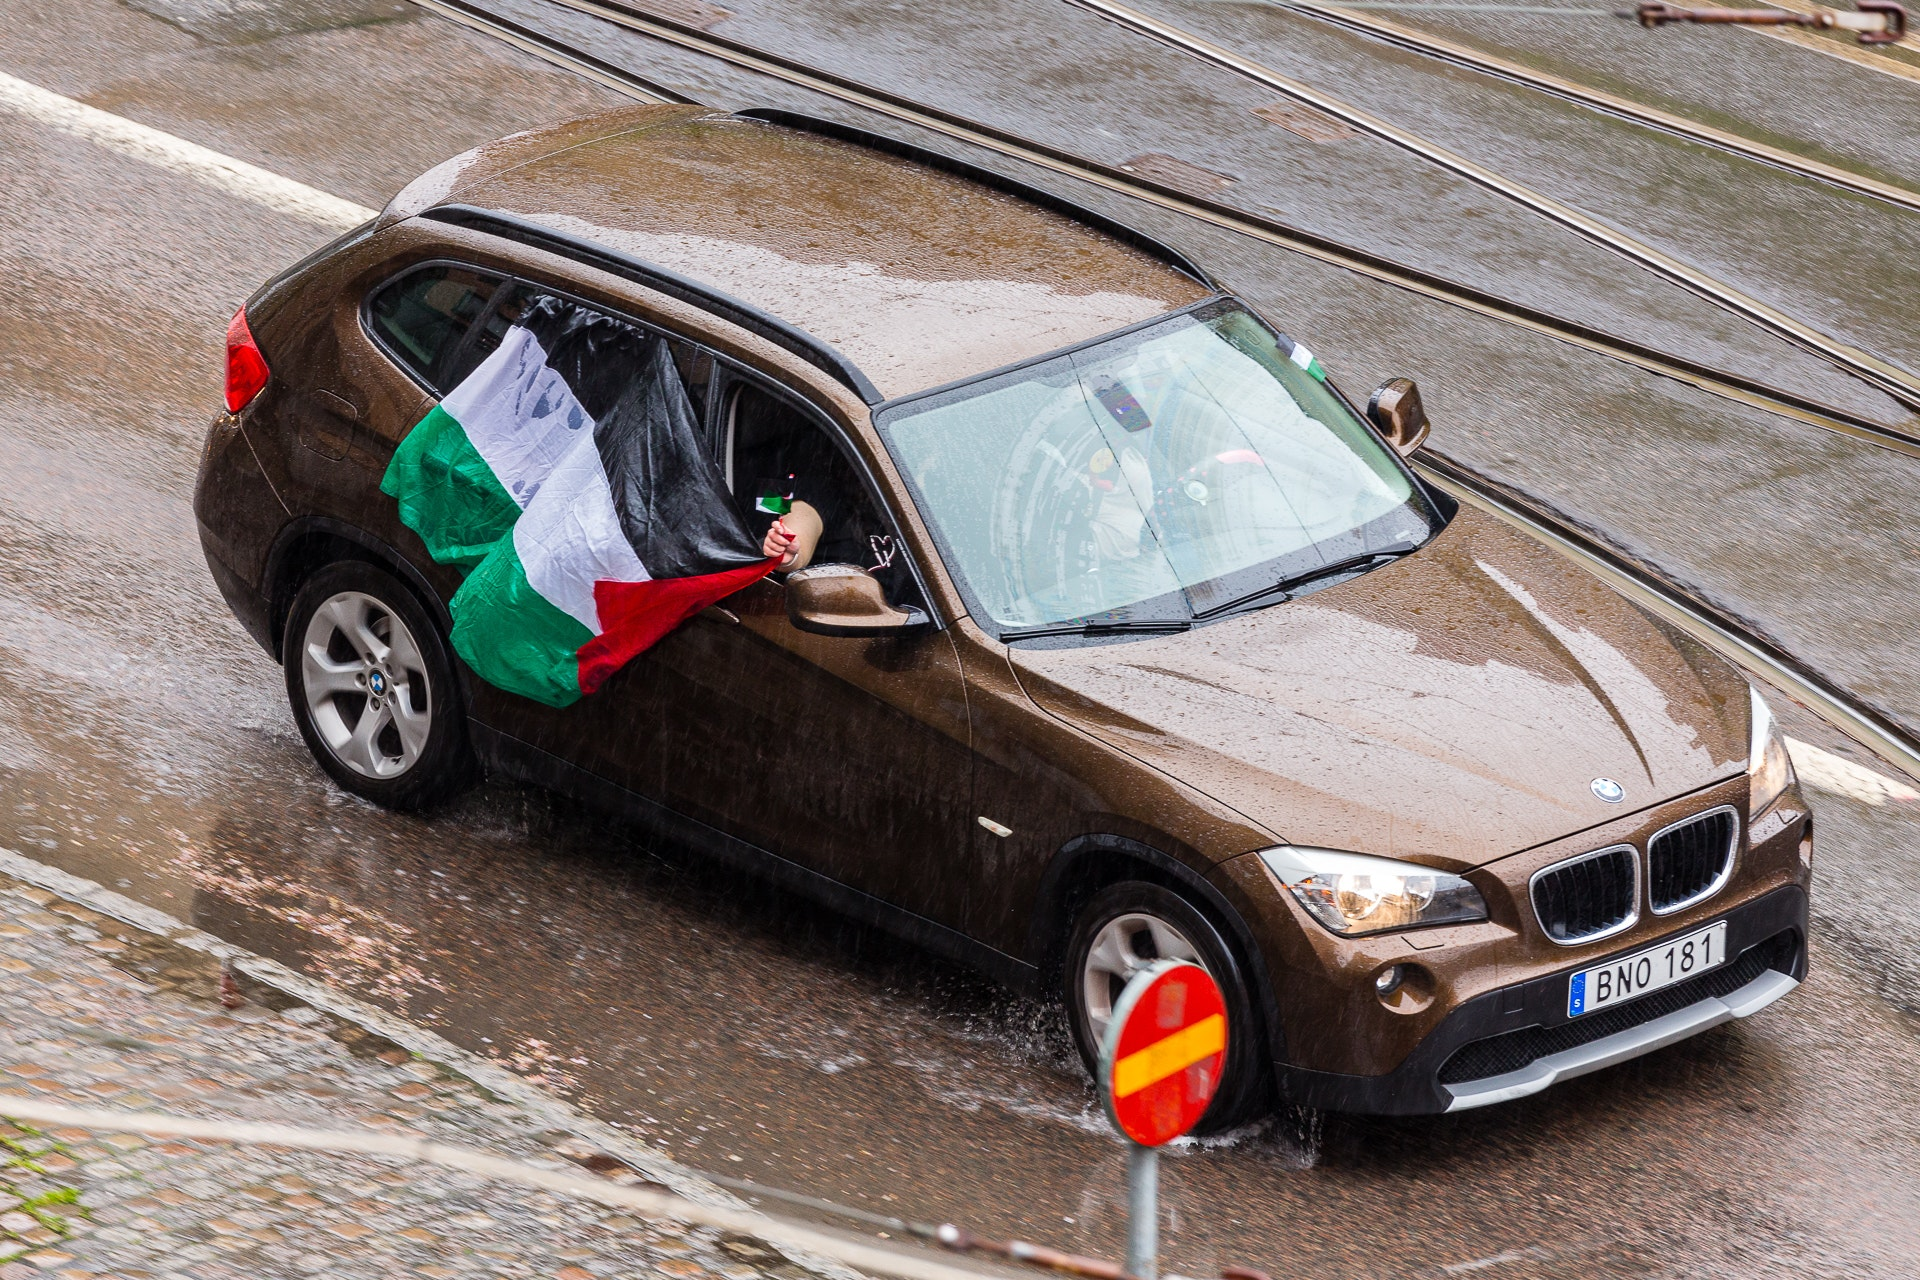 Soaked by the rain, the Palestinian flag flys flat on the car